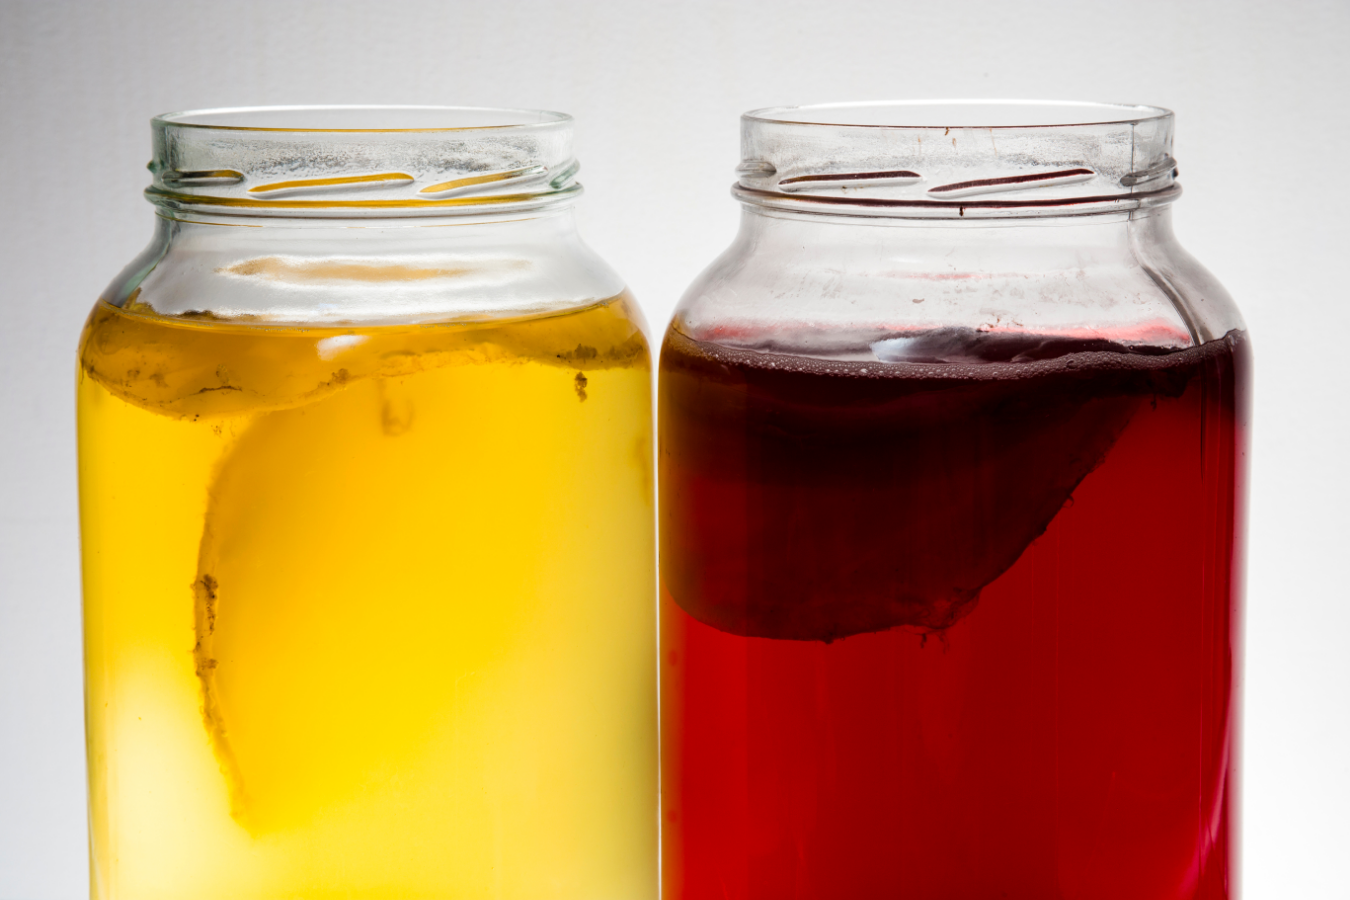 Best Teas to Use for Your Homemade Kombucha